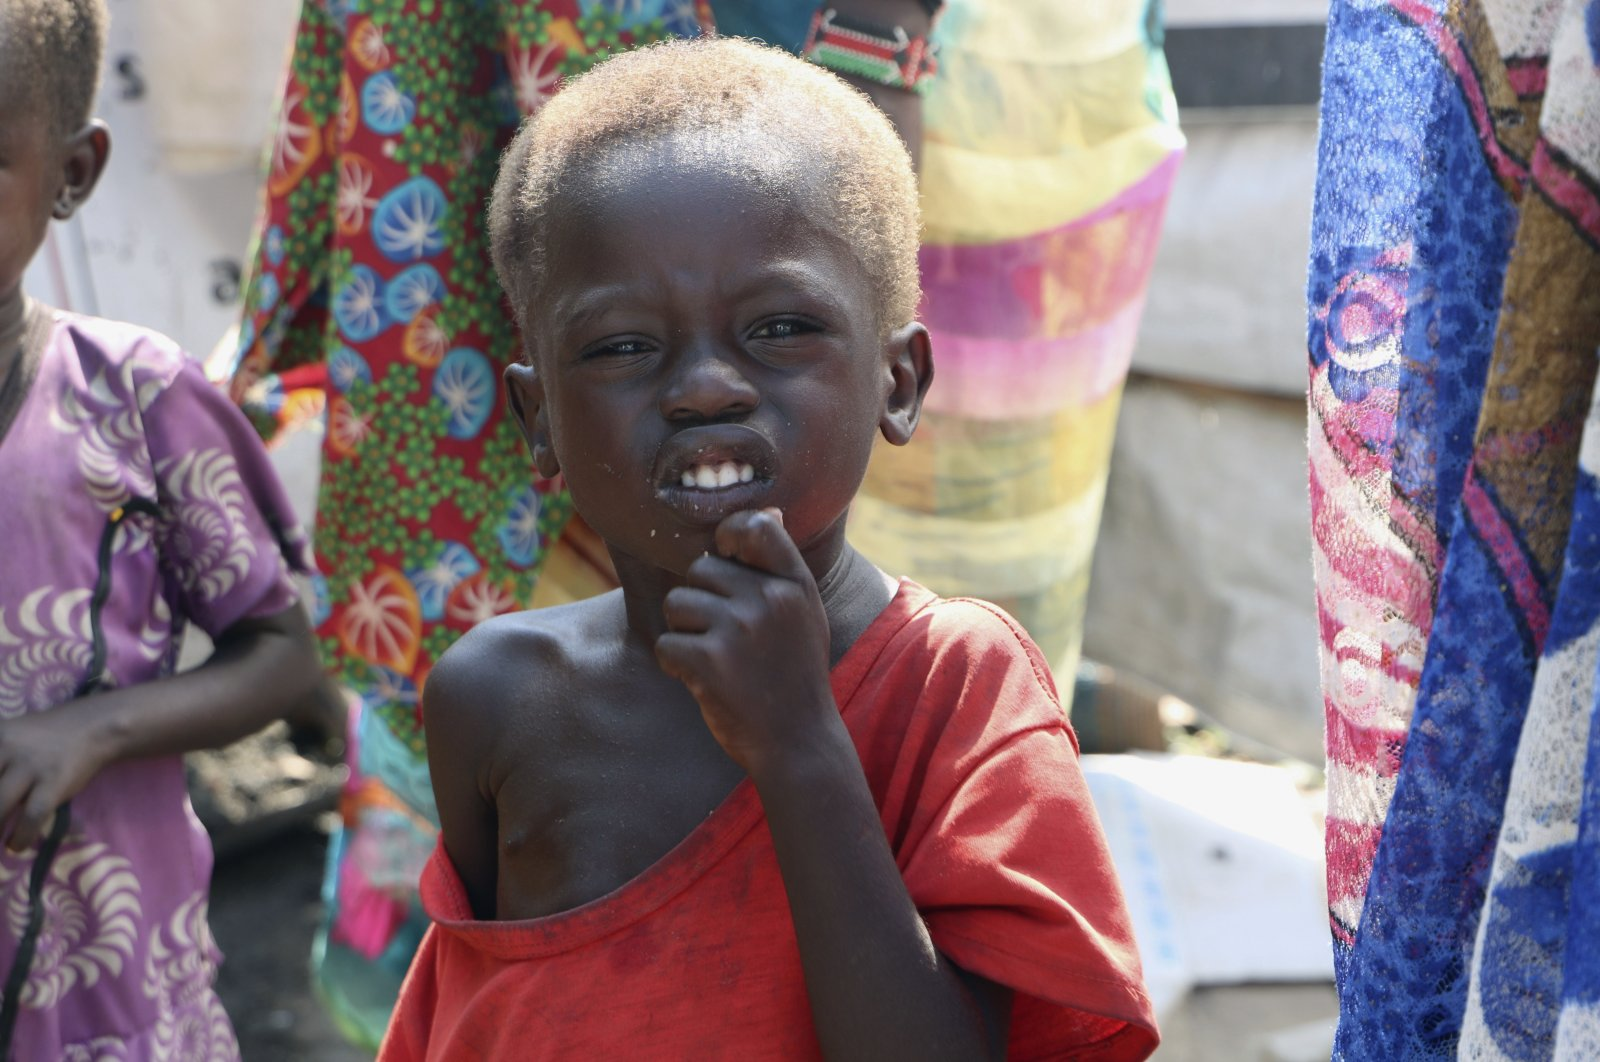 Three-year-old Peter Sebit stands outside a health clinic waiting to receive food supplements in Pibor, South Sudan, Dec. 17, 2020. (AP Photo)